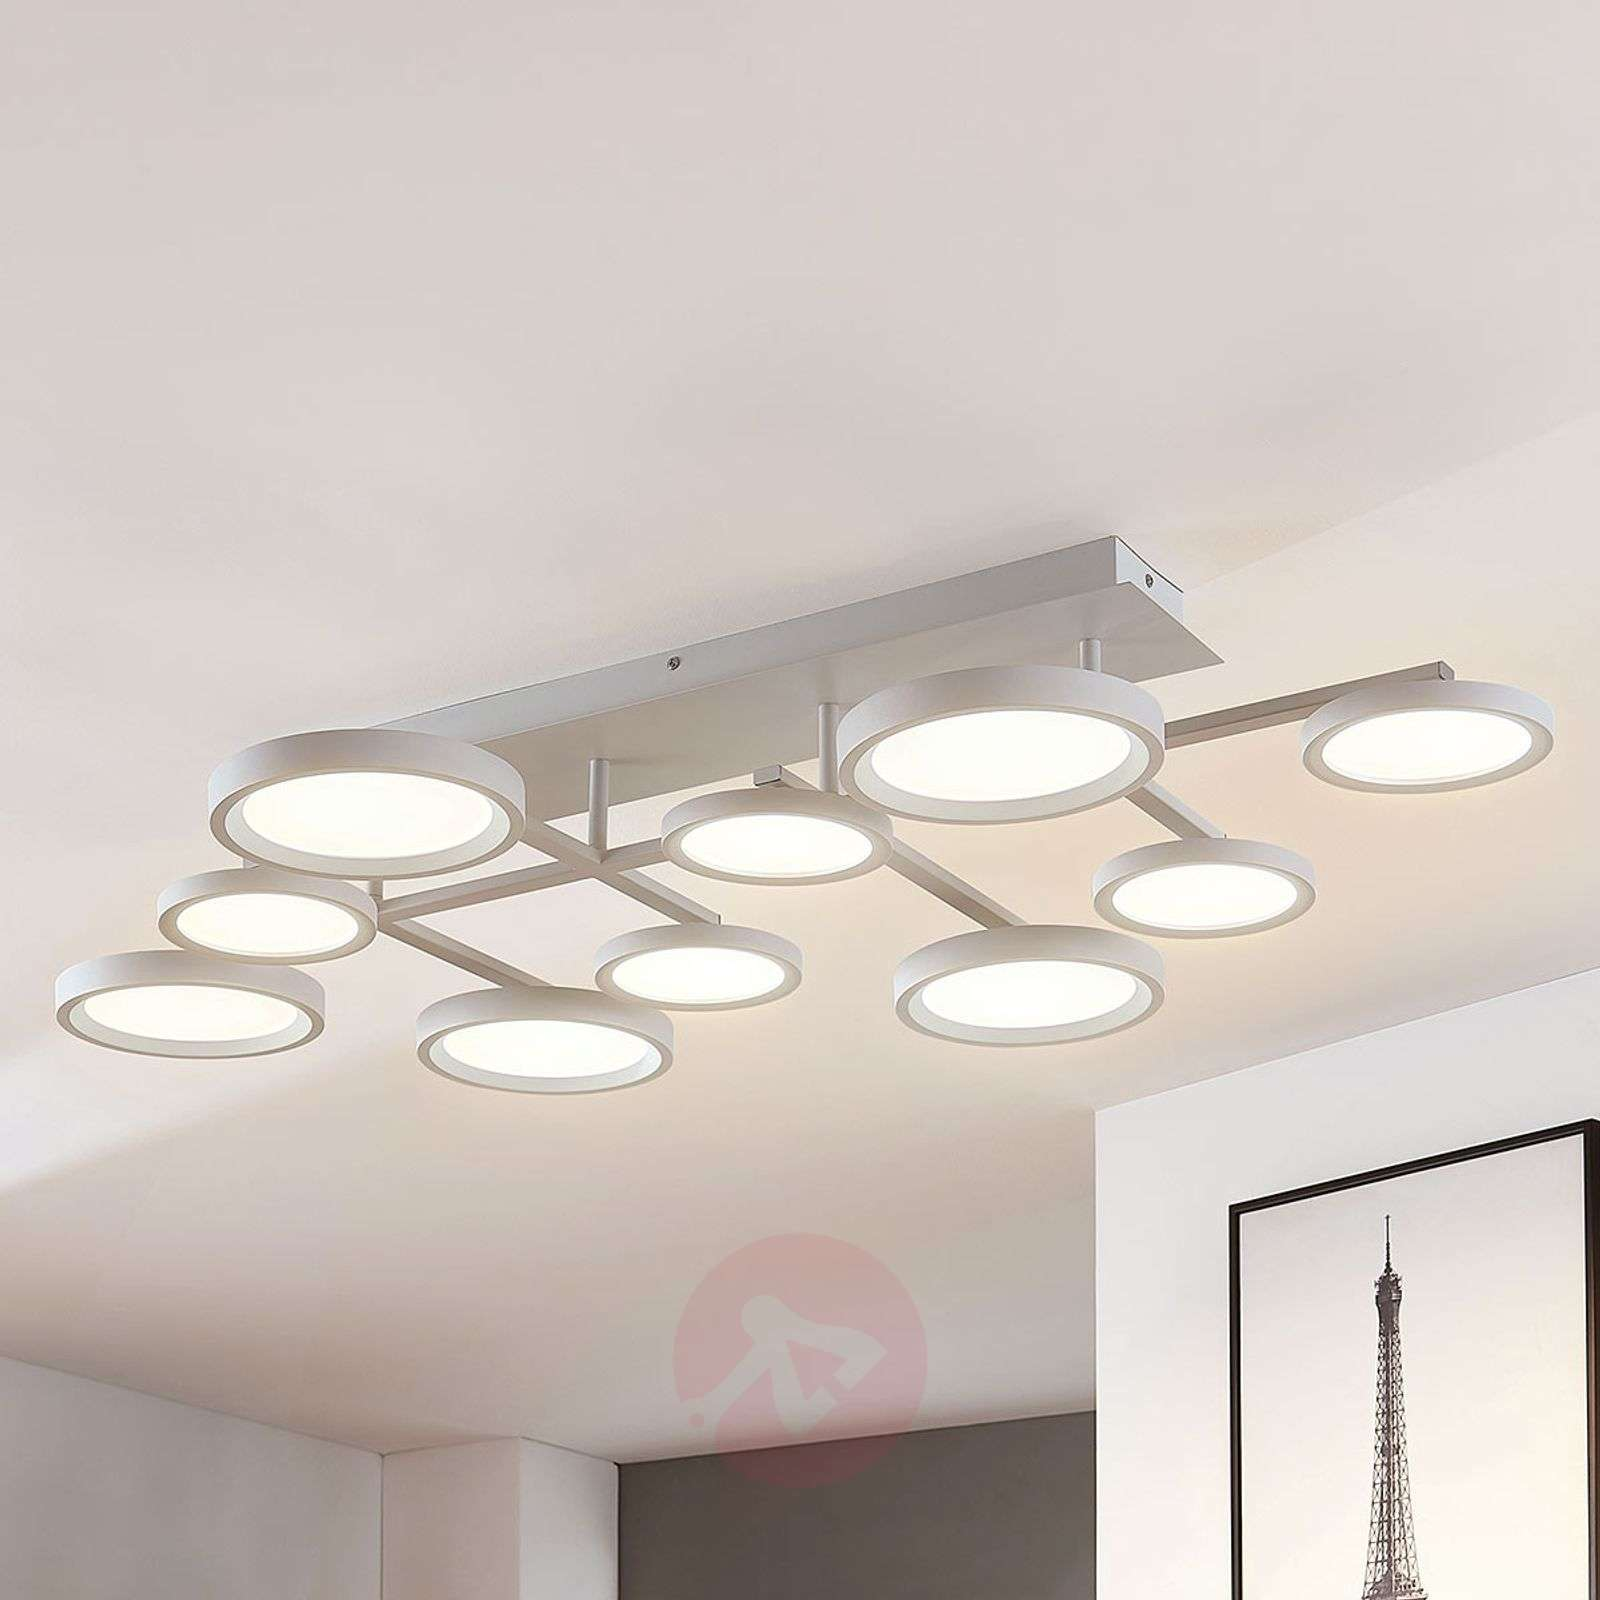 Plafonnier LED Marnia dimmable à 9lampes-9624045-01